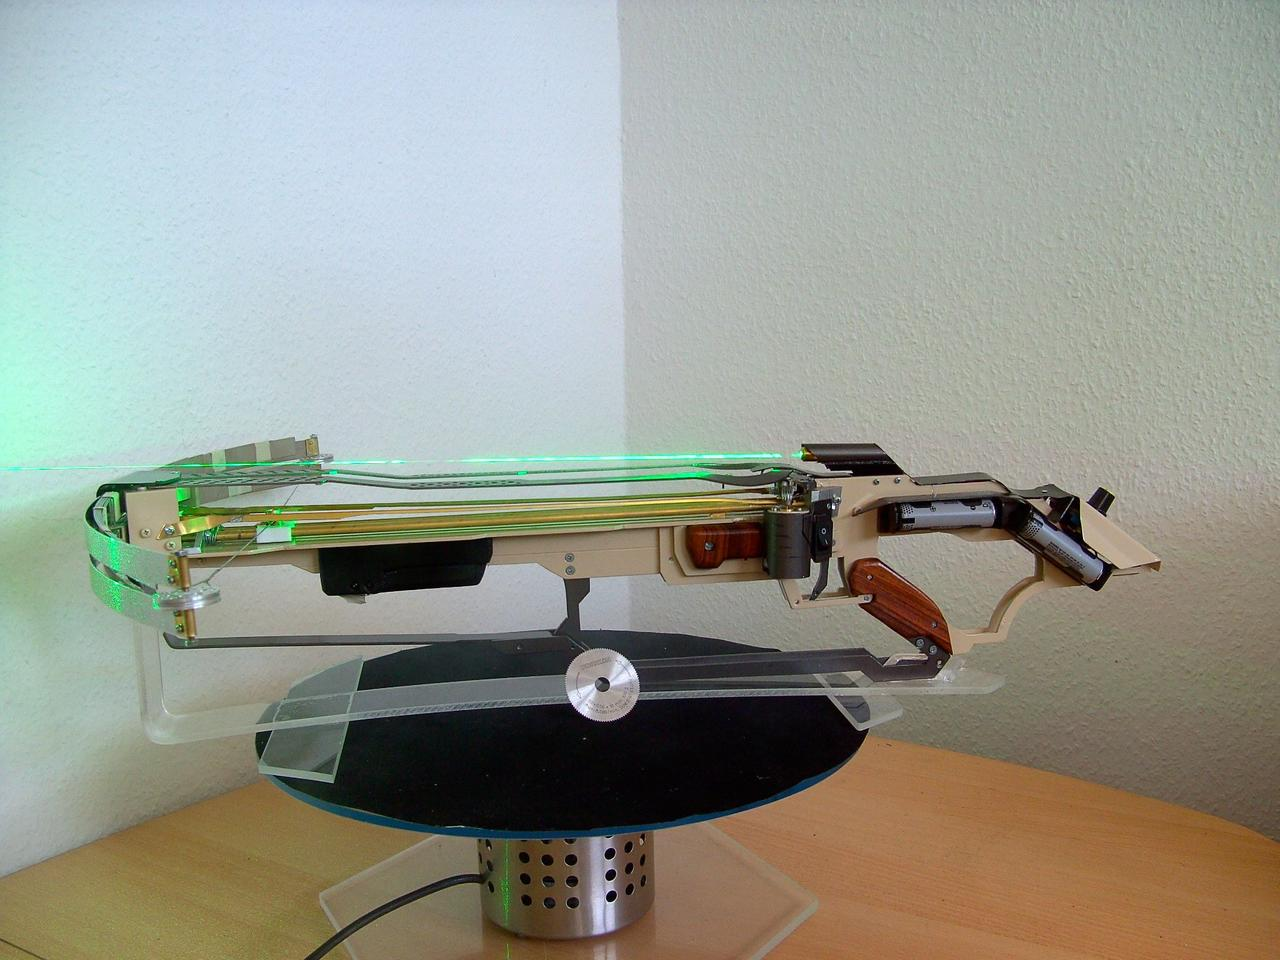 The Blade Drive incorporates an adjustable green laser sighting system, along with another very notable feature